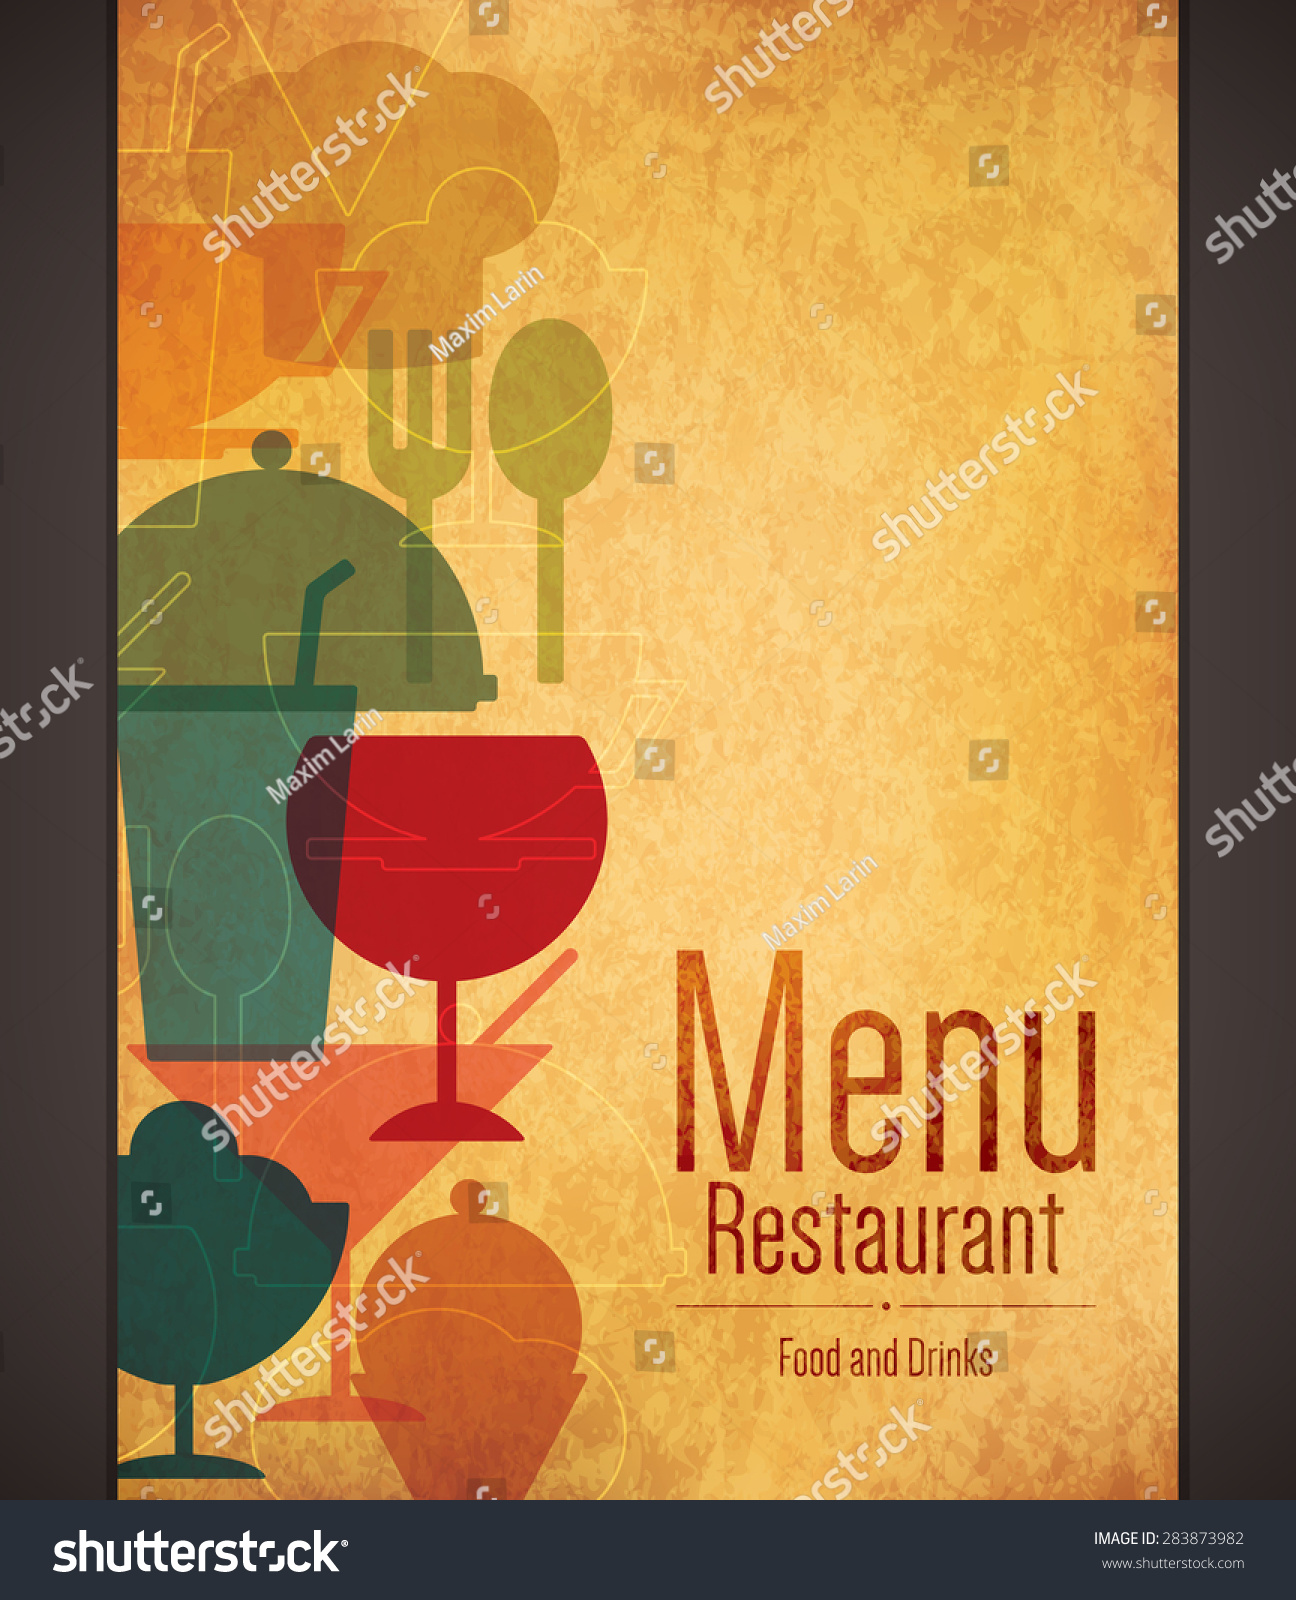 Restaurant menu design vector brochure template stock